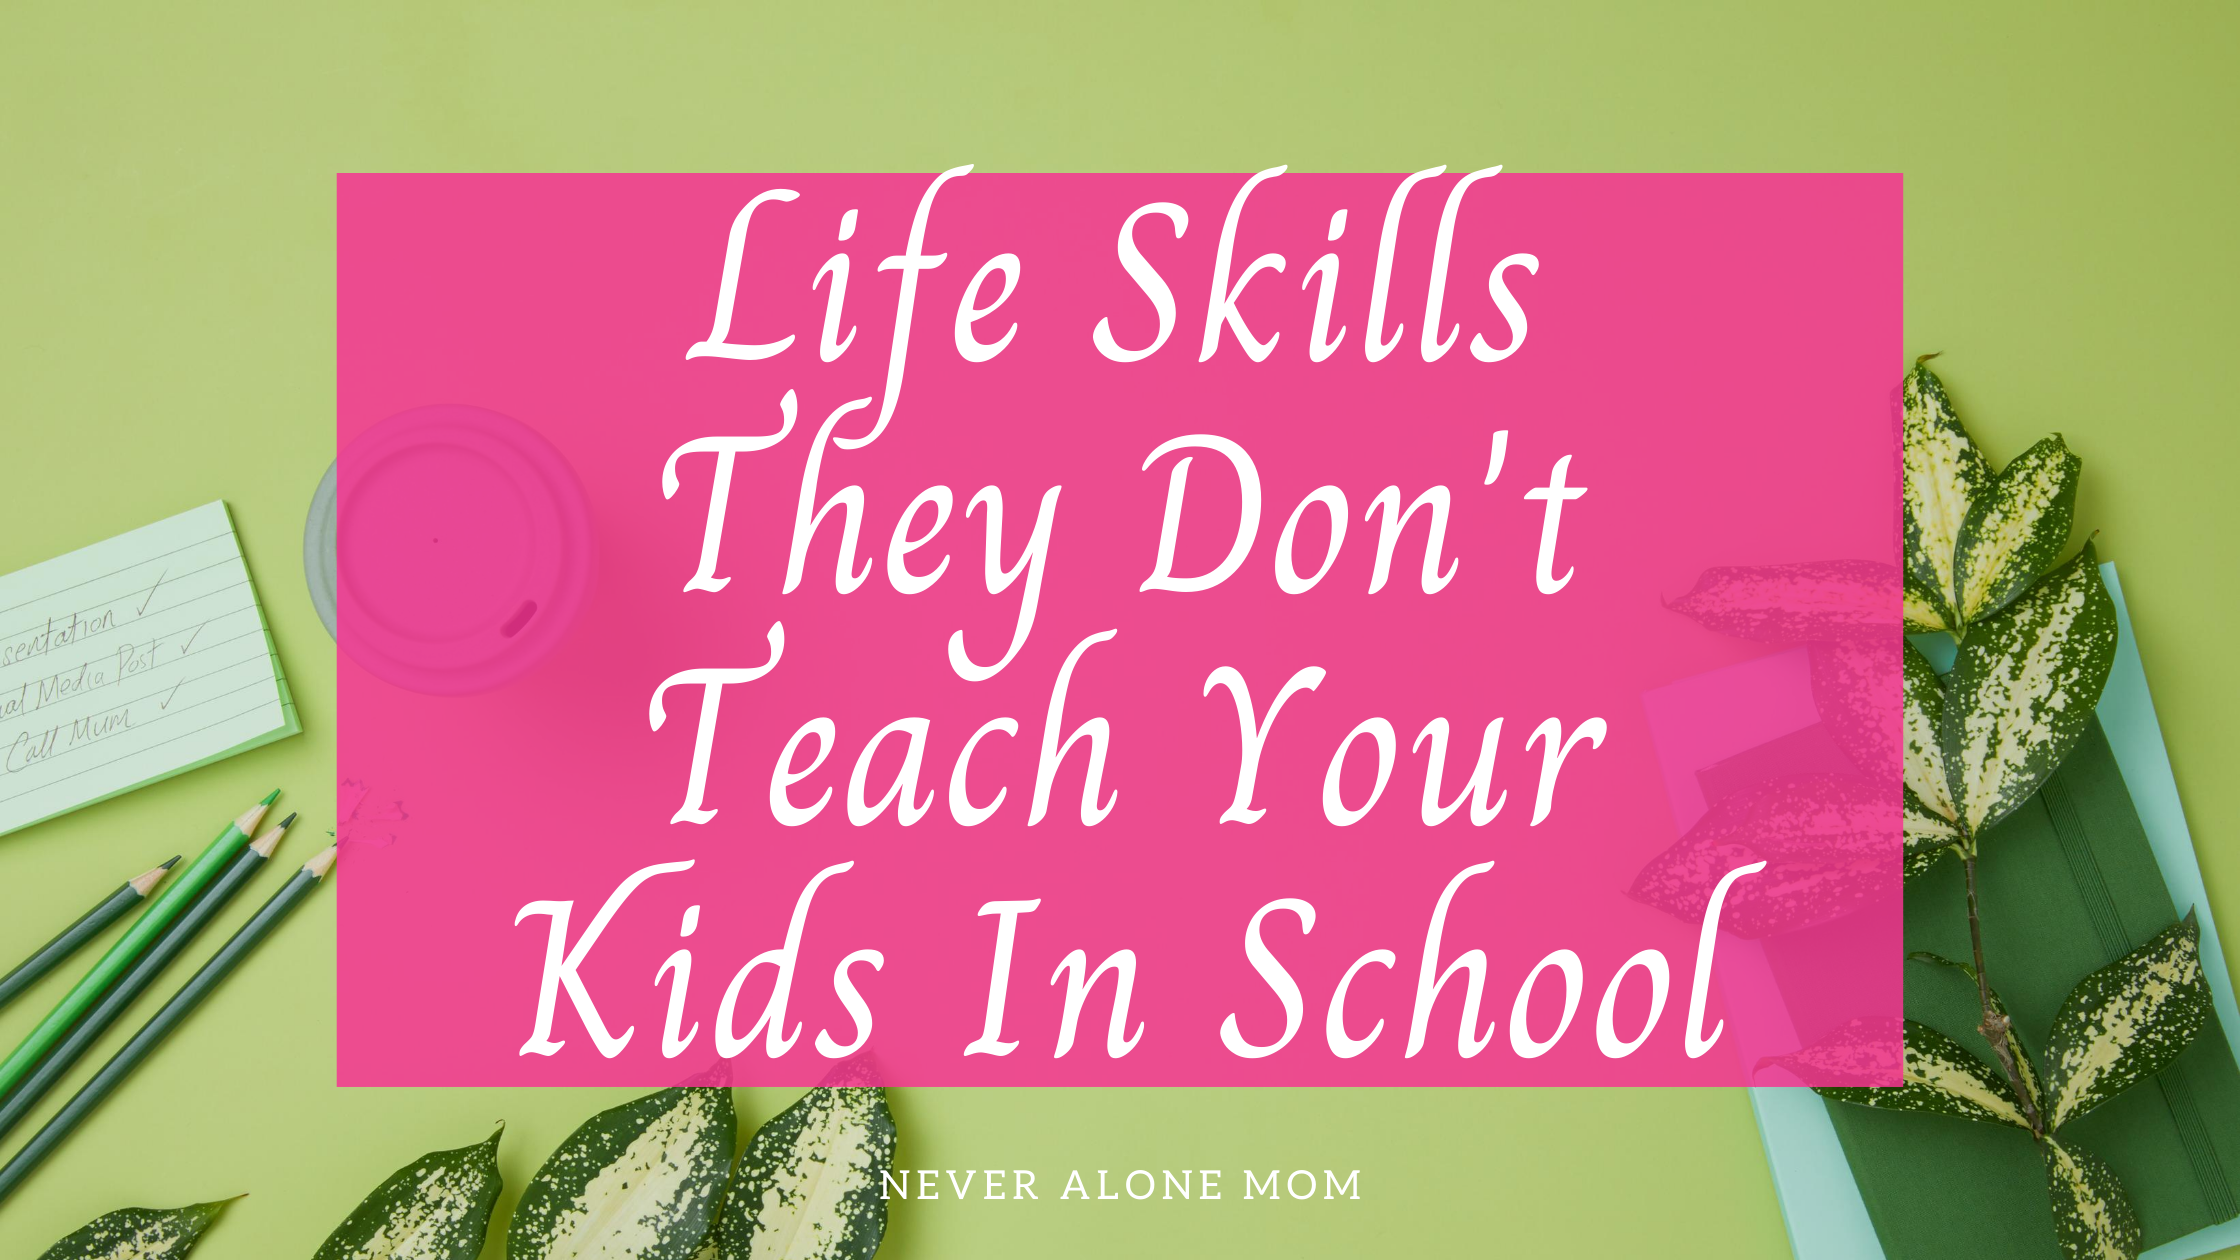 Life skills they don't teach your kids in school|neveralonemom.com